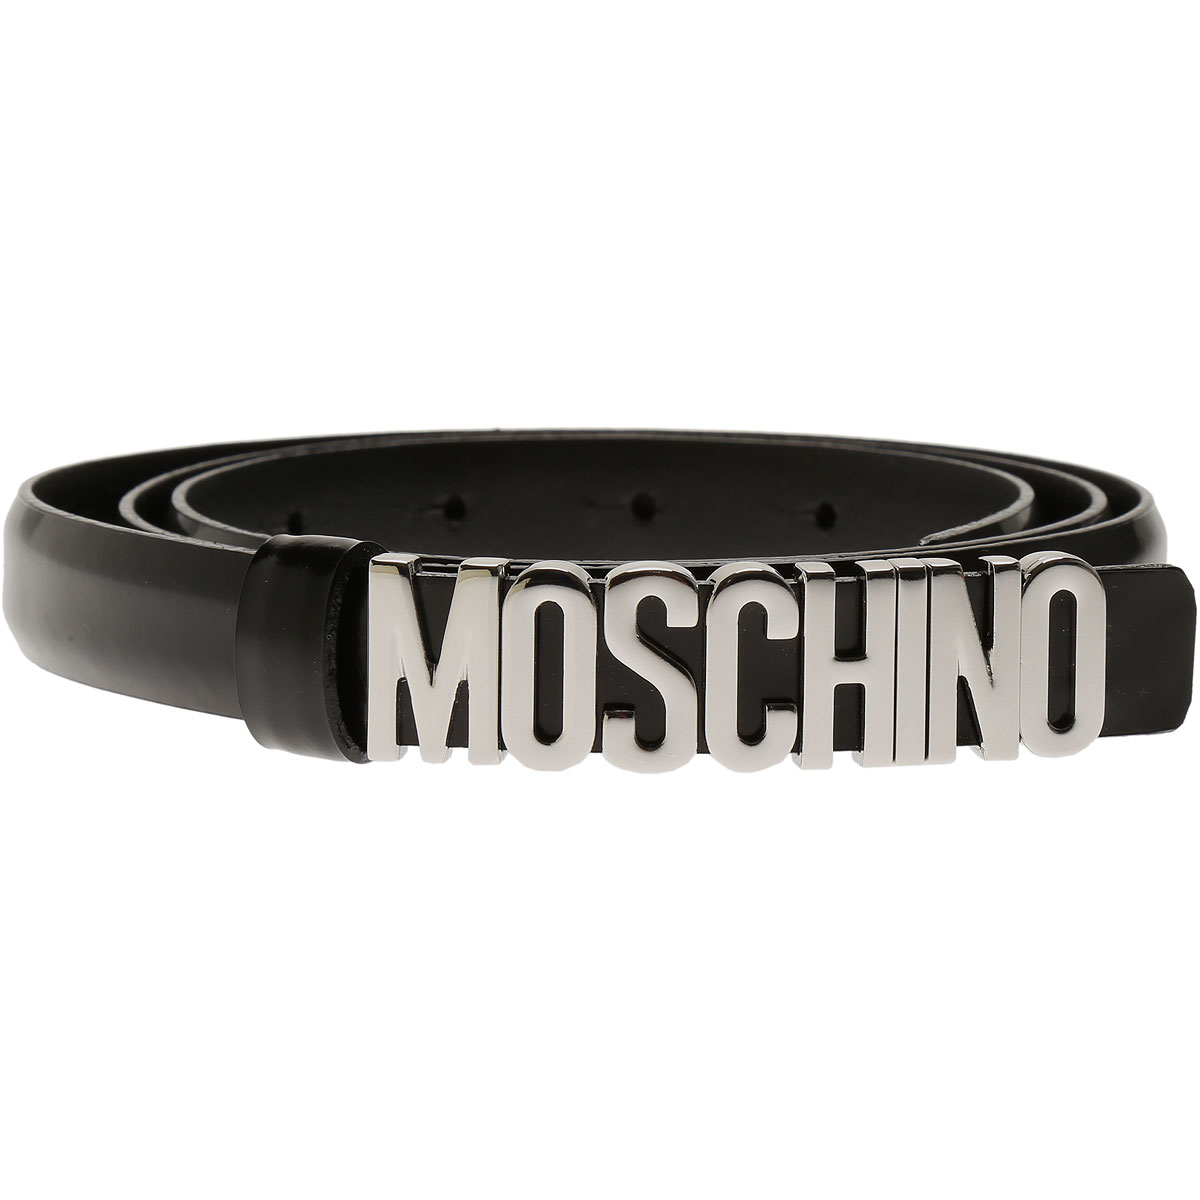 Moschino Womens Belts, Black, Leather, 2017, 38 inches - 95 cm 40 inches - 100 cm 42 inches - 105 cm 44 inches - 110 cm